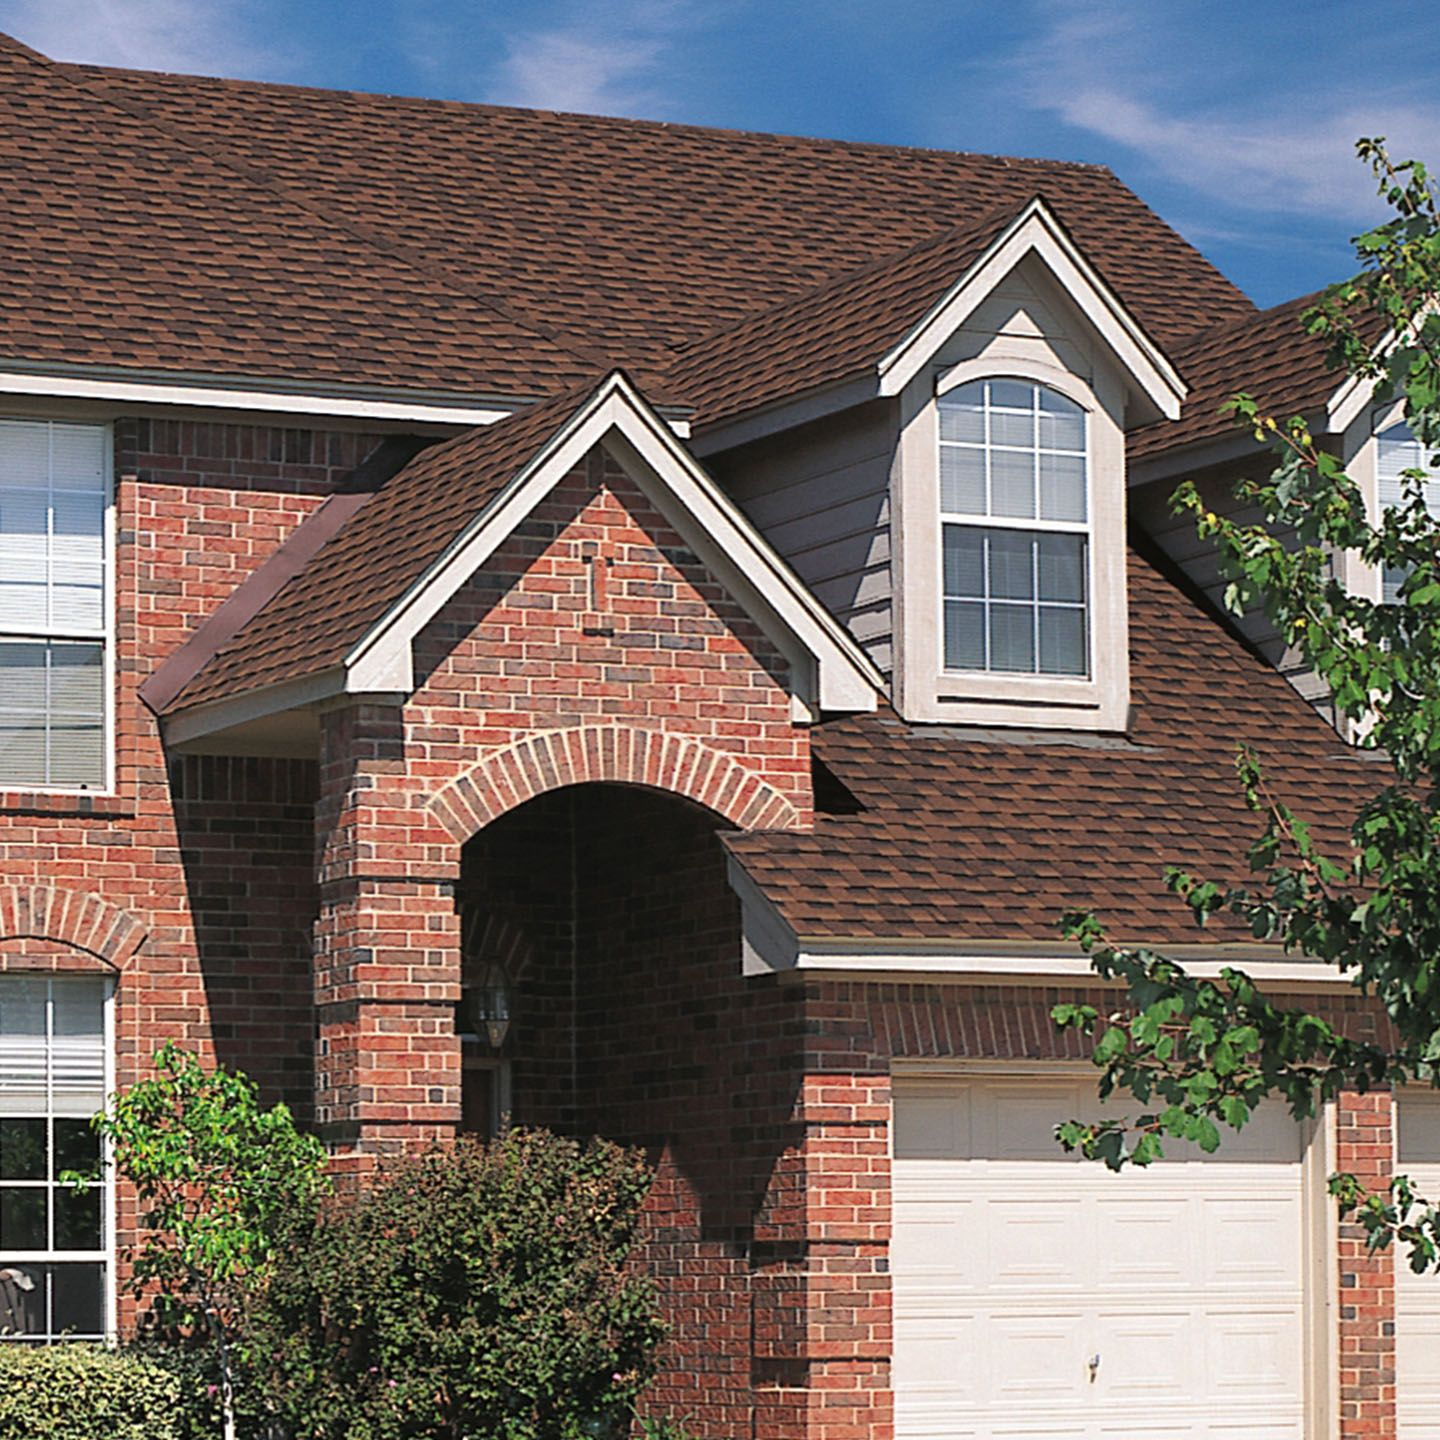 Roof Shingle Colors How To Pick The Best Roof Color For Your Home In 2020 Roof Shingle Colors Orange Brick Houses Shingle Colors